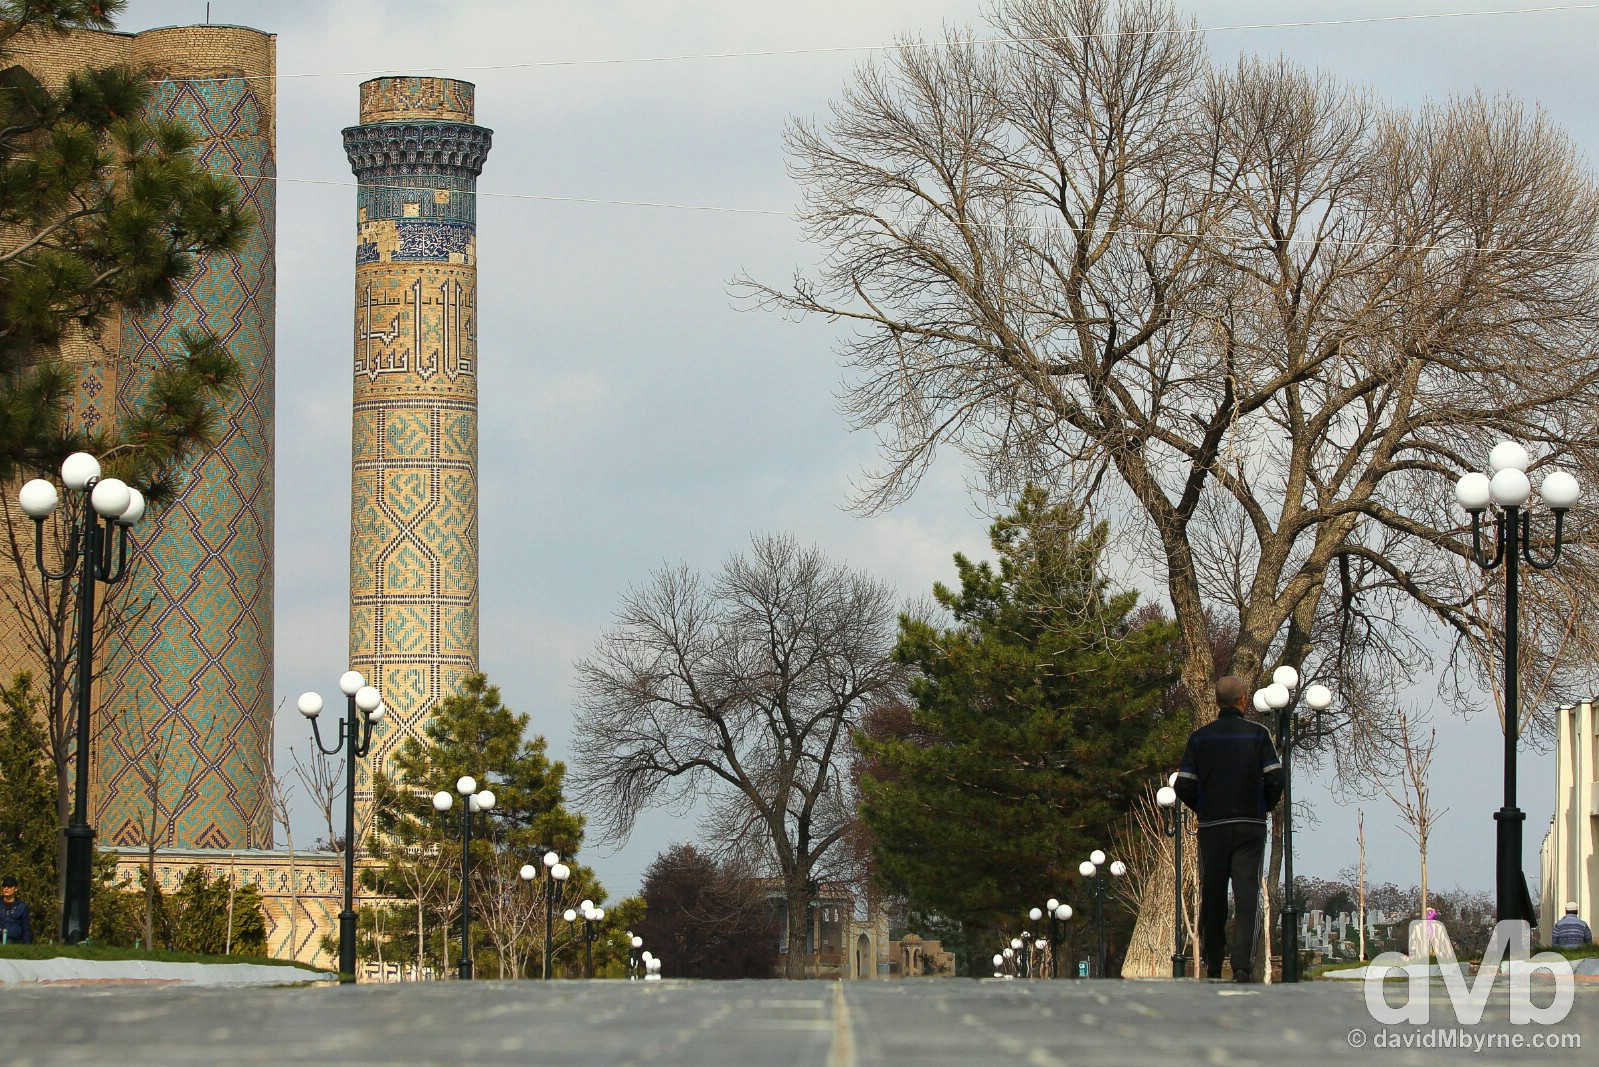 The new thoroughfare of Toshkent in the 'new' Samarkand, Uzbekistan. March 8, 2015.